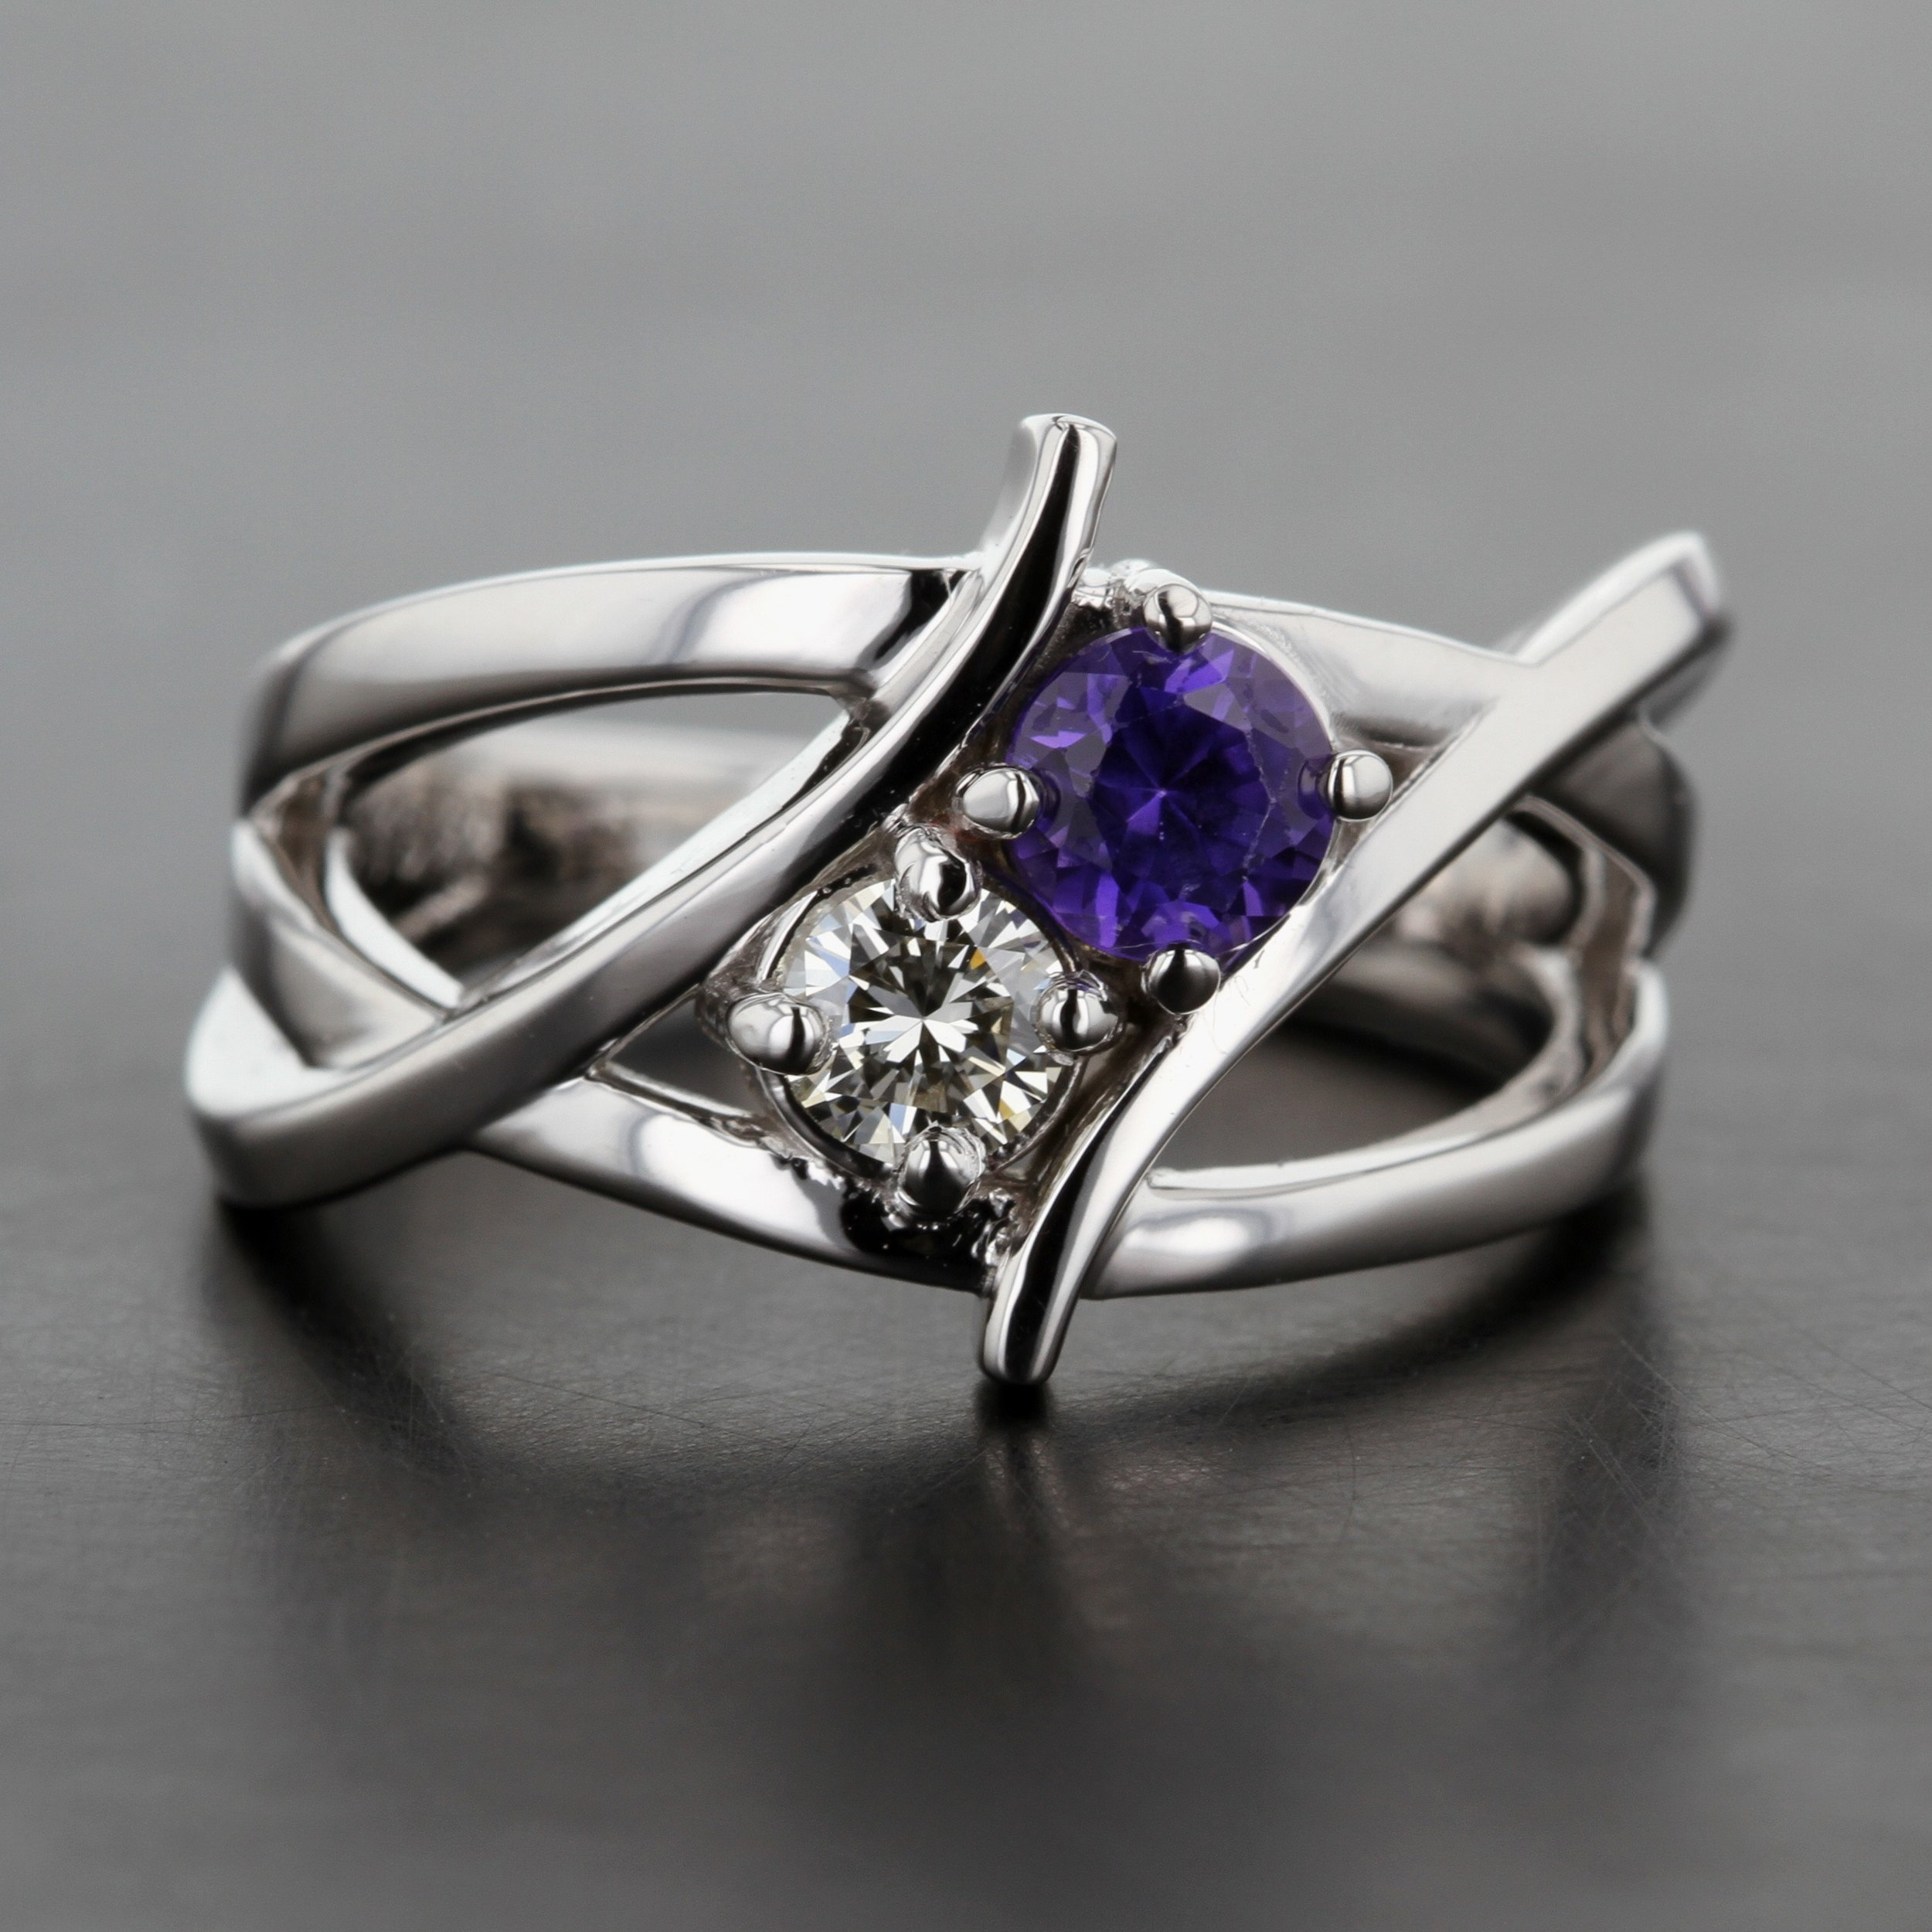 two-stone-mothers-ring-amethyst-diamond-bypass-custom-design.jpg